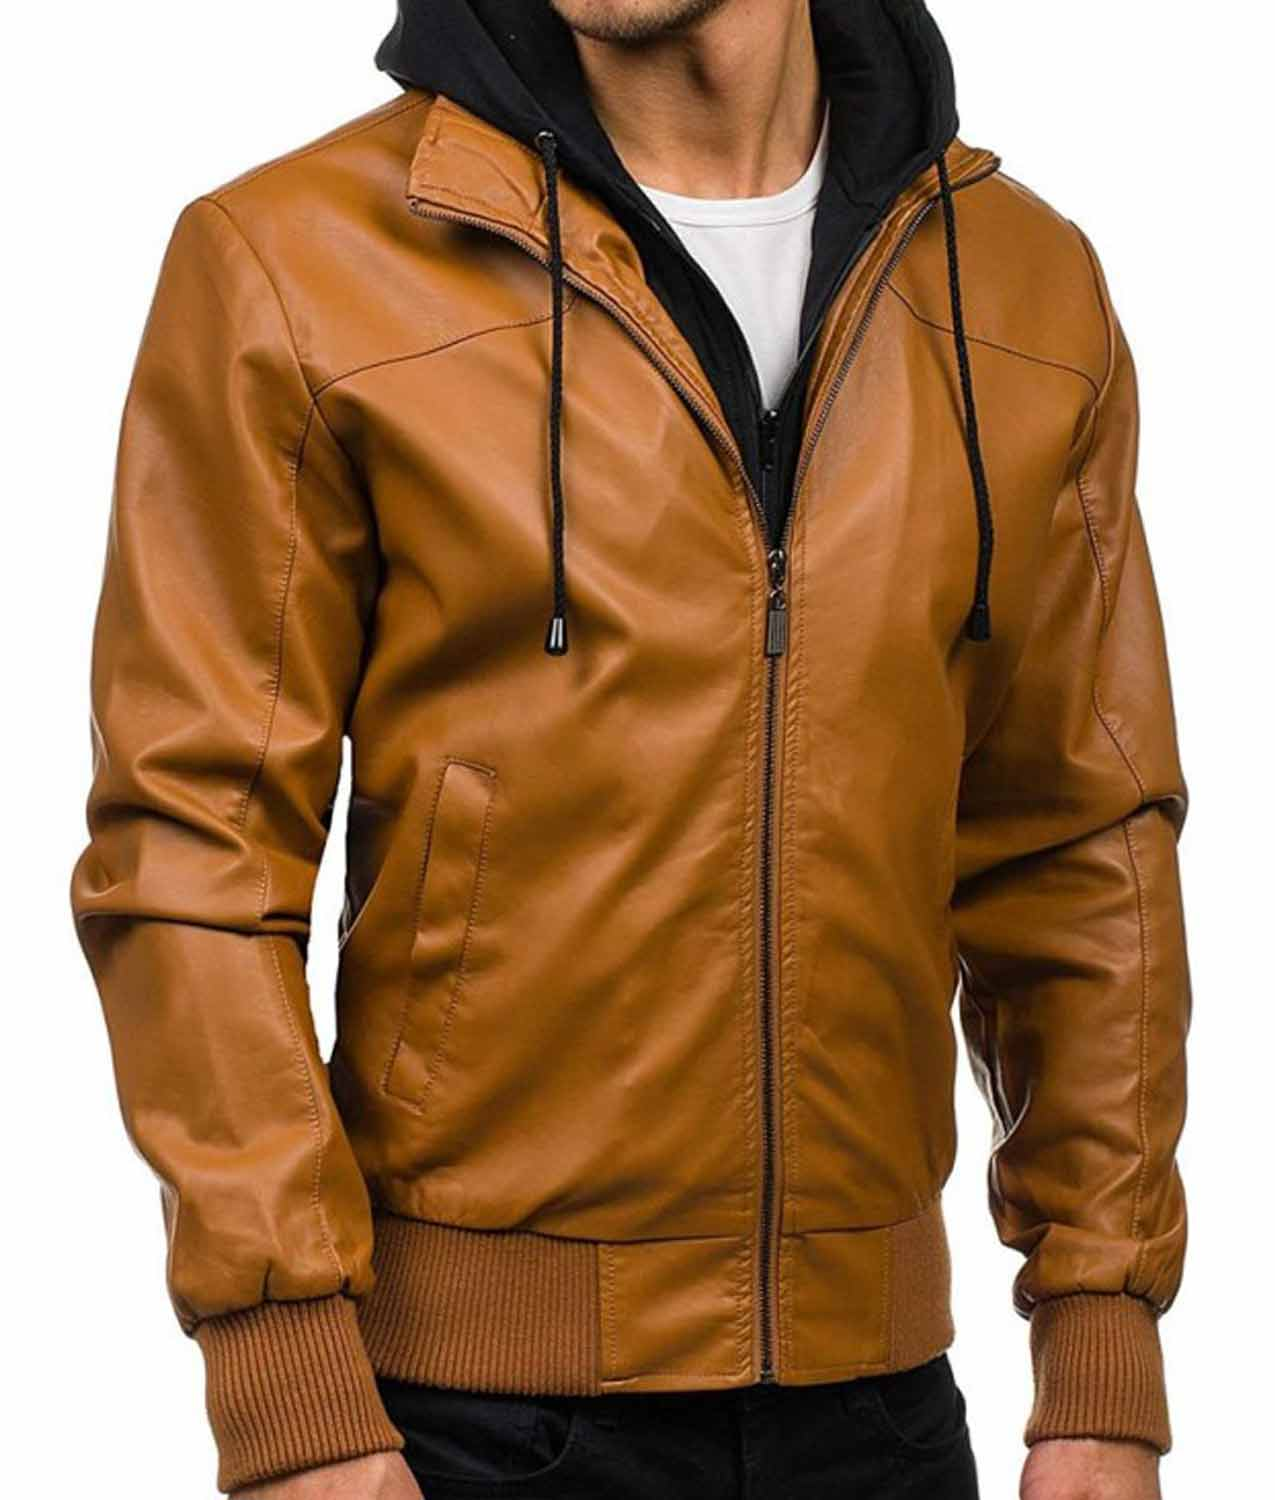 Mens Causal Bomber Camel Brown Leather Jacket With Hoodie